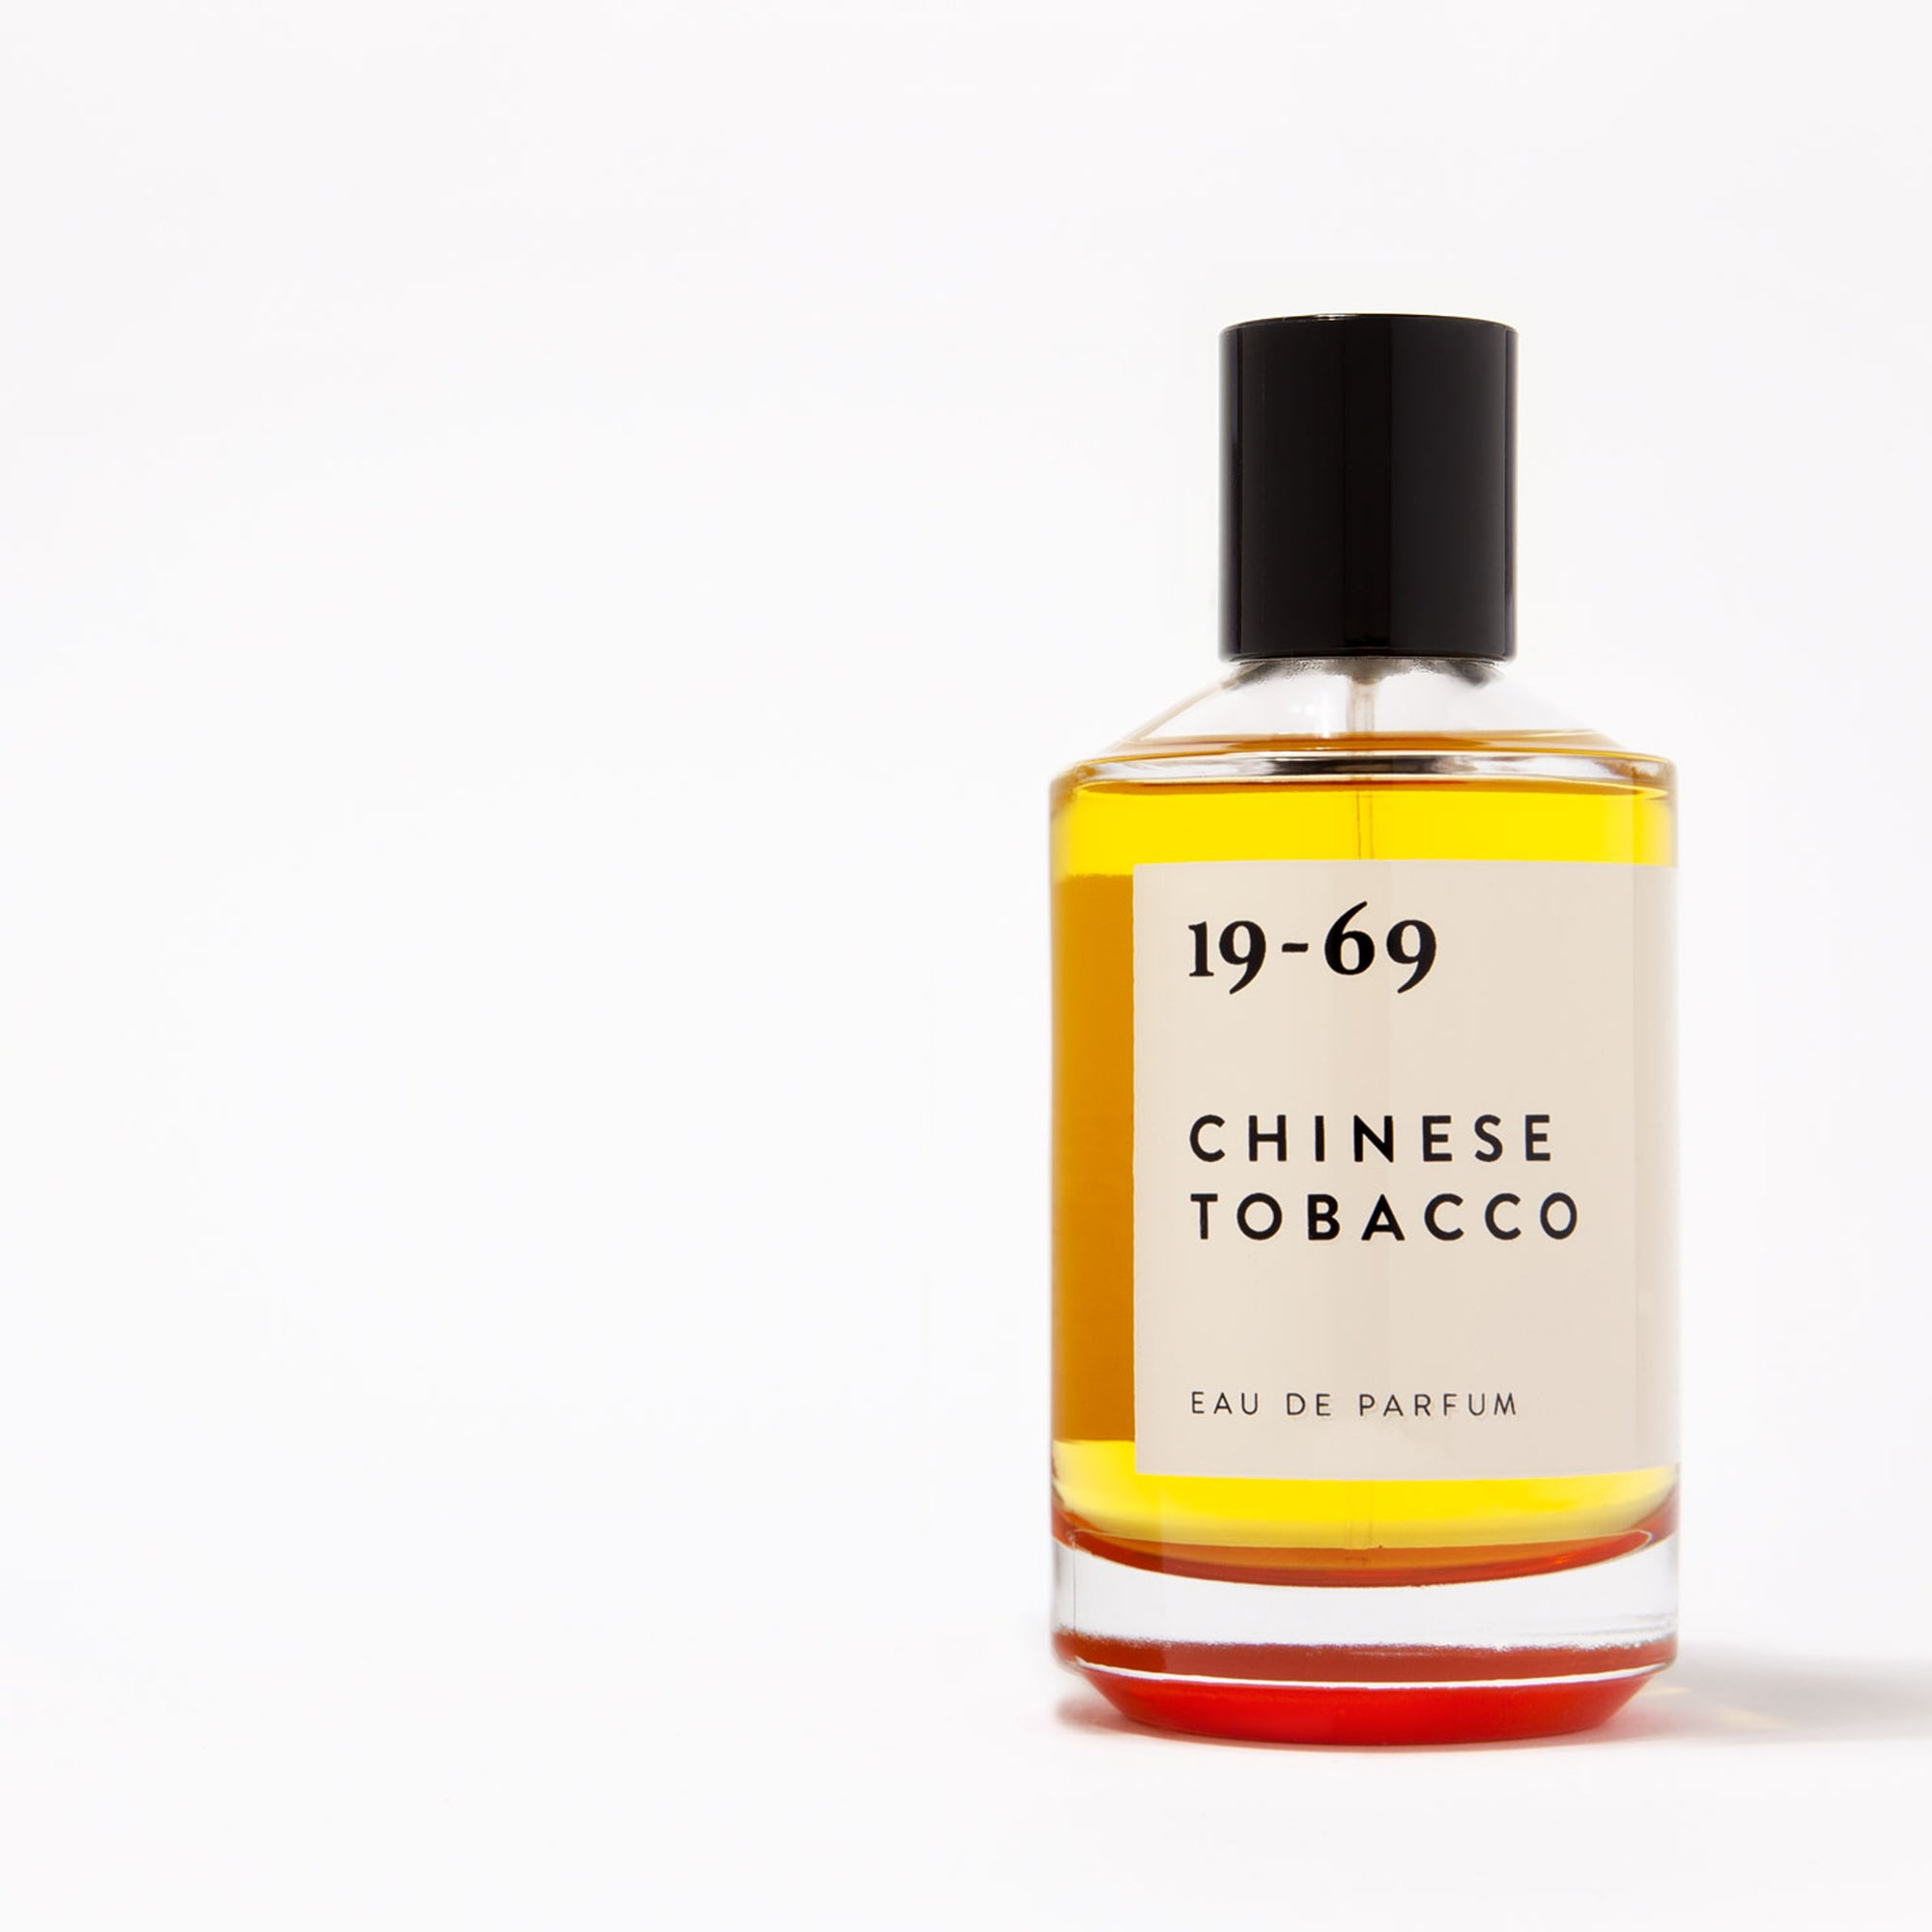 19-69 Chinese Tobacco EDP 100ml